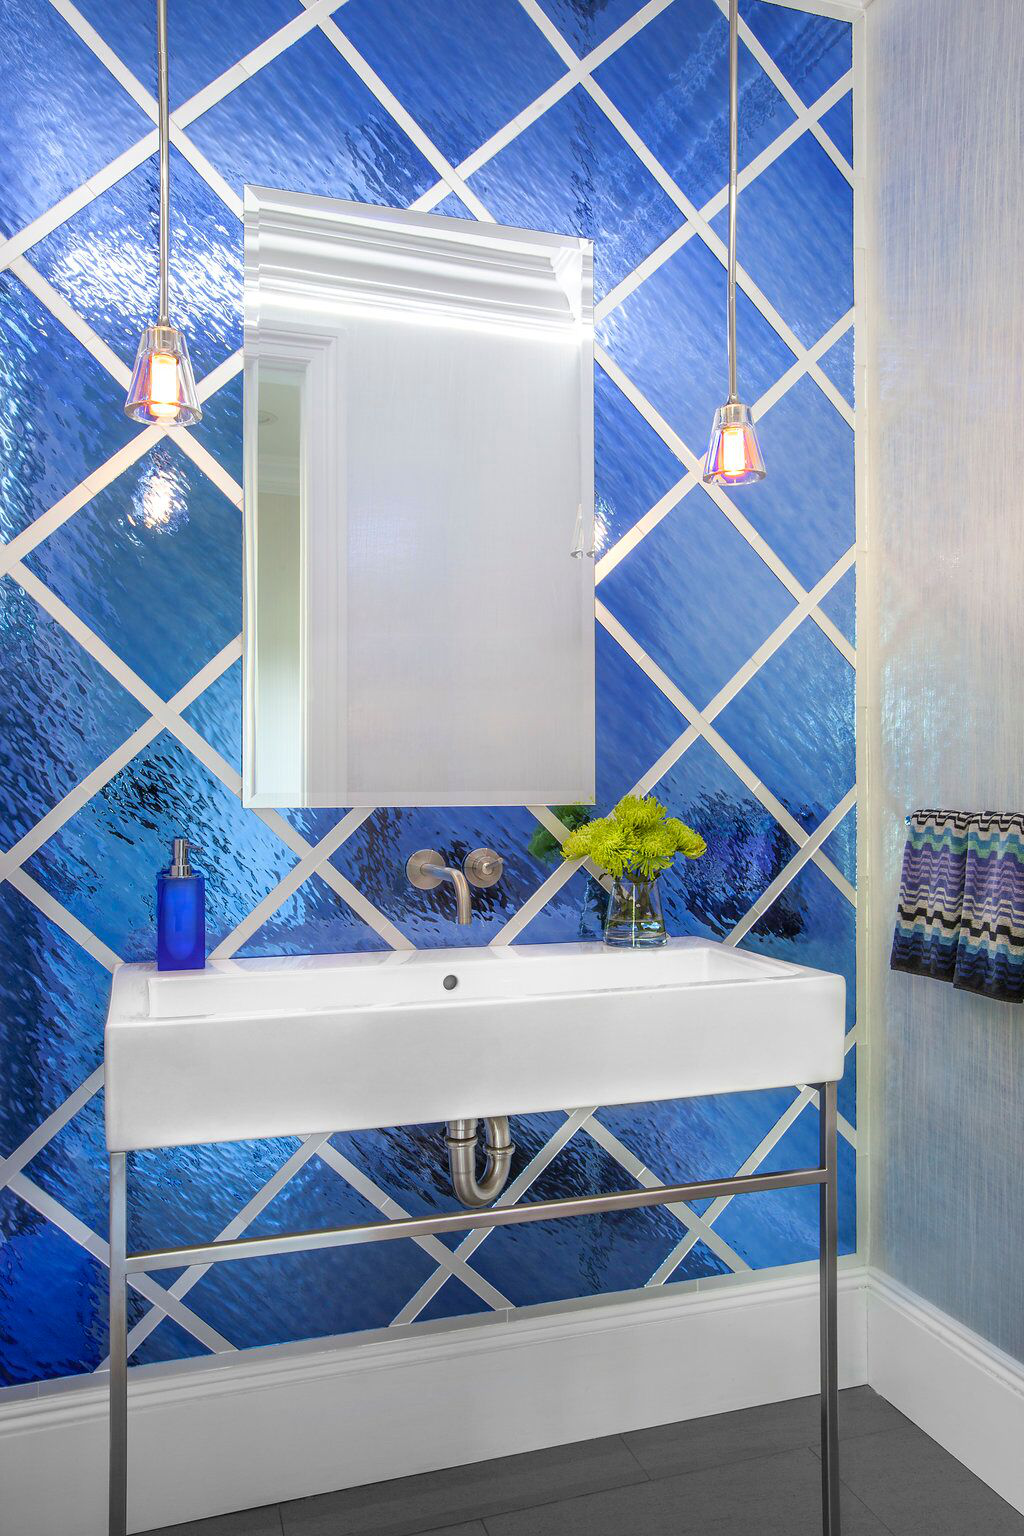 Vibrant, Bold Contemporary Cobalt Blue Powder Room - Iridescent Glass Tiles by Evelyn Benatar New York Interior Design, Inc.